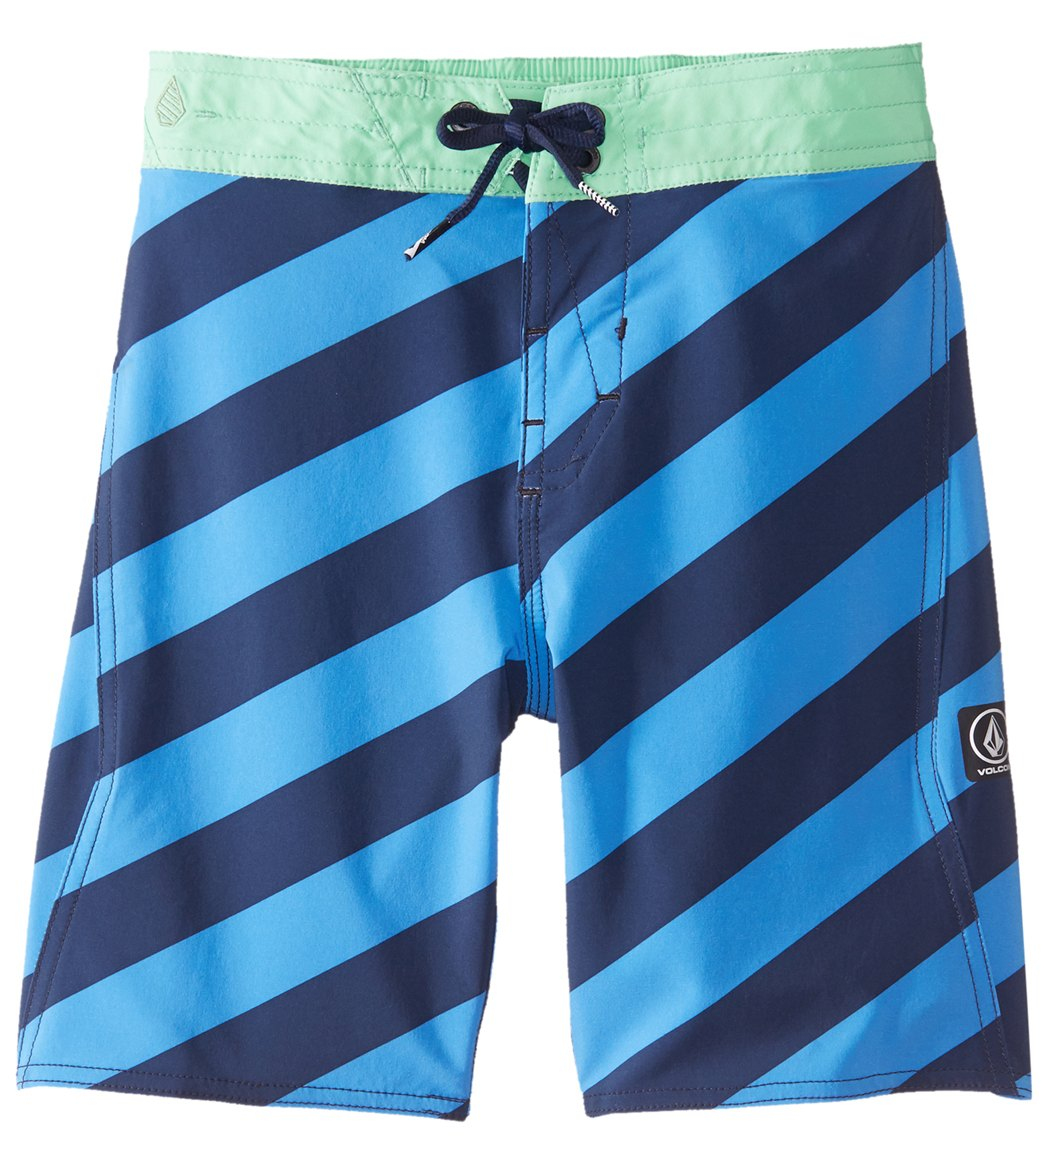 d0d65983c8d Volcom Boys' Stripey Elastic Boardshort (Toddler, Little Kid, Big Kid) at  SwimOutlet.com